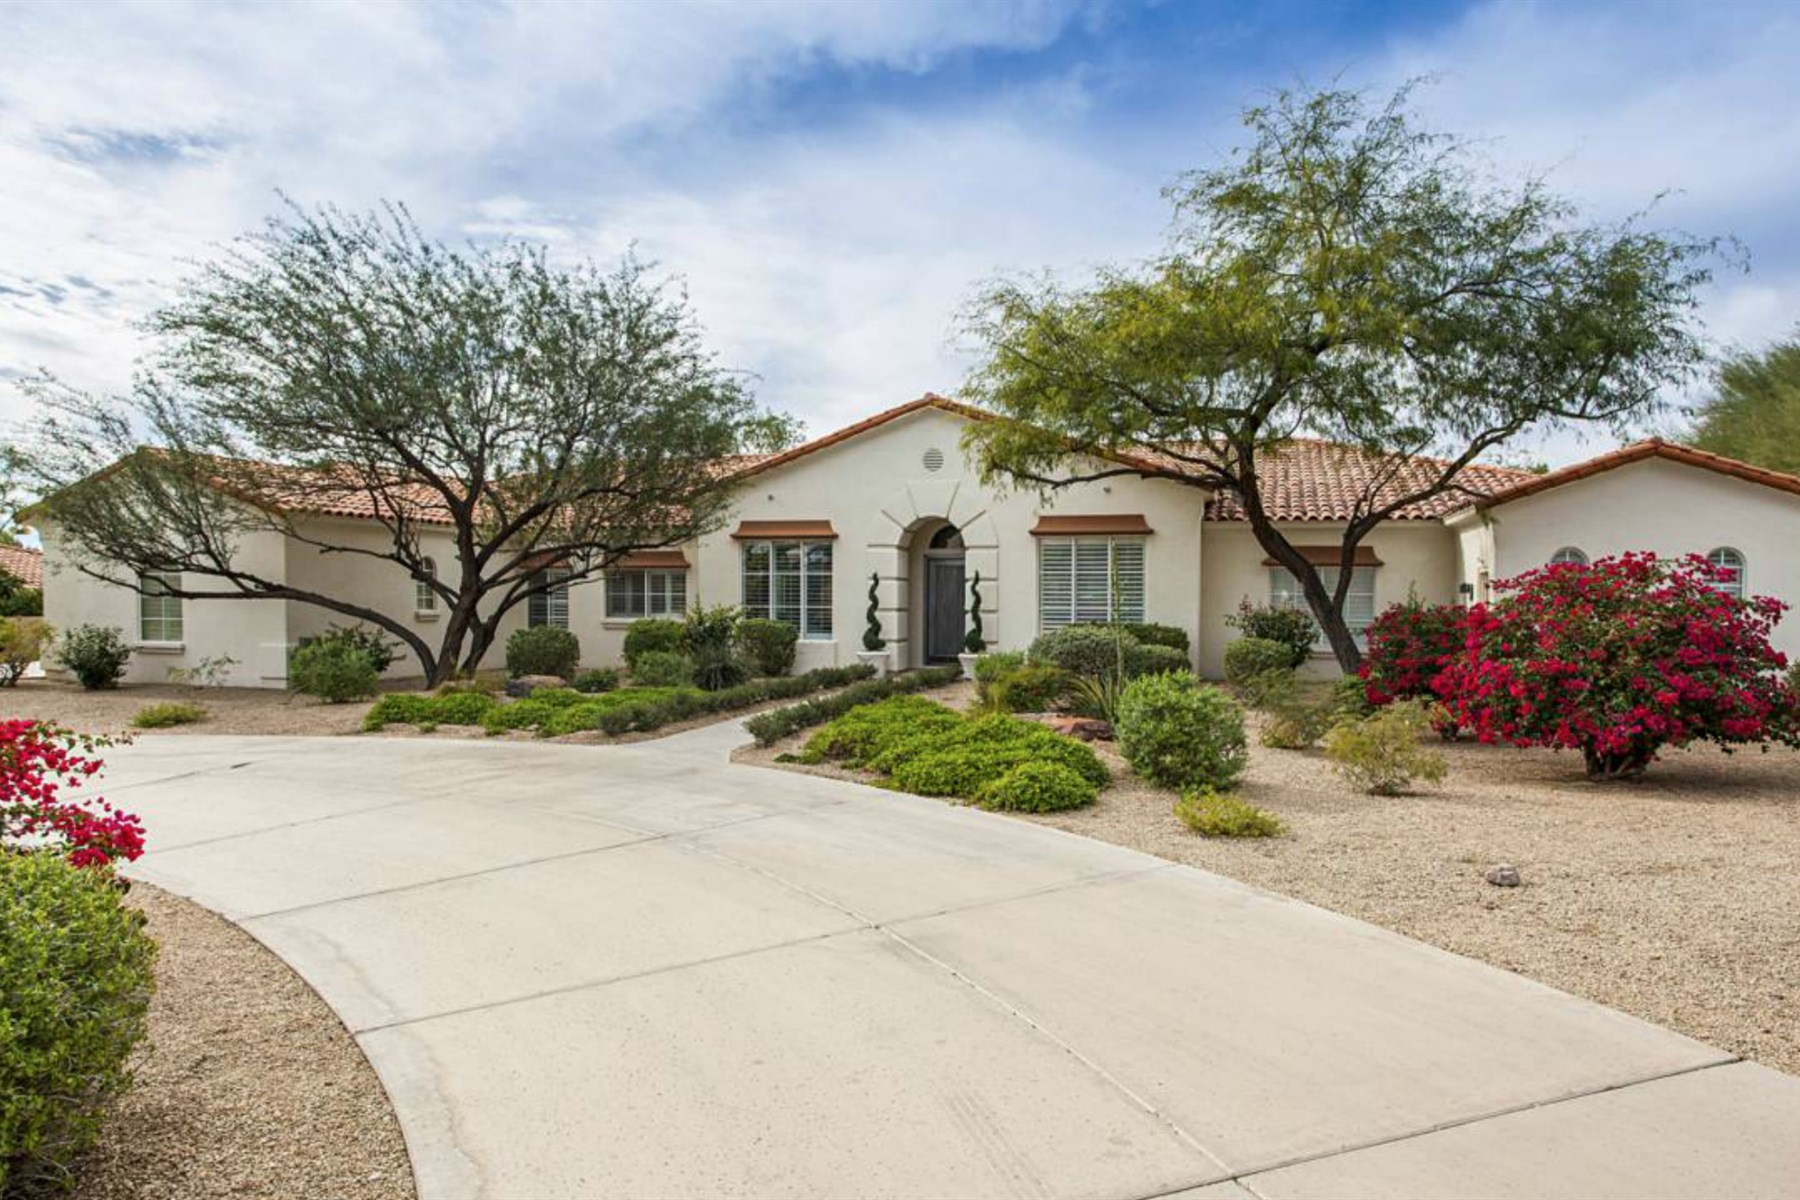 Single Family Home for Sale at Private retreat on the south side of camelback mountain 4782 N 53RD ST Phoenix, Arizona 85018 United States